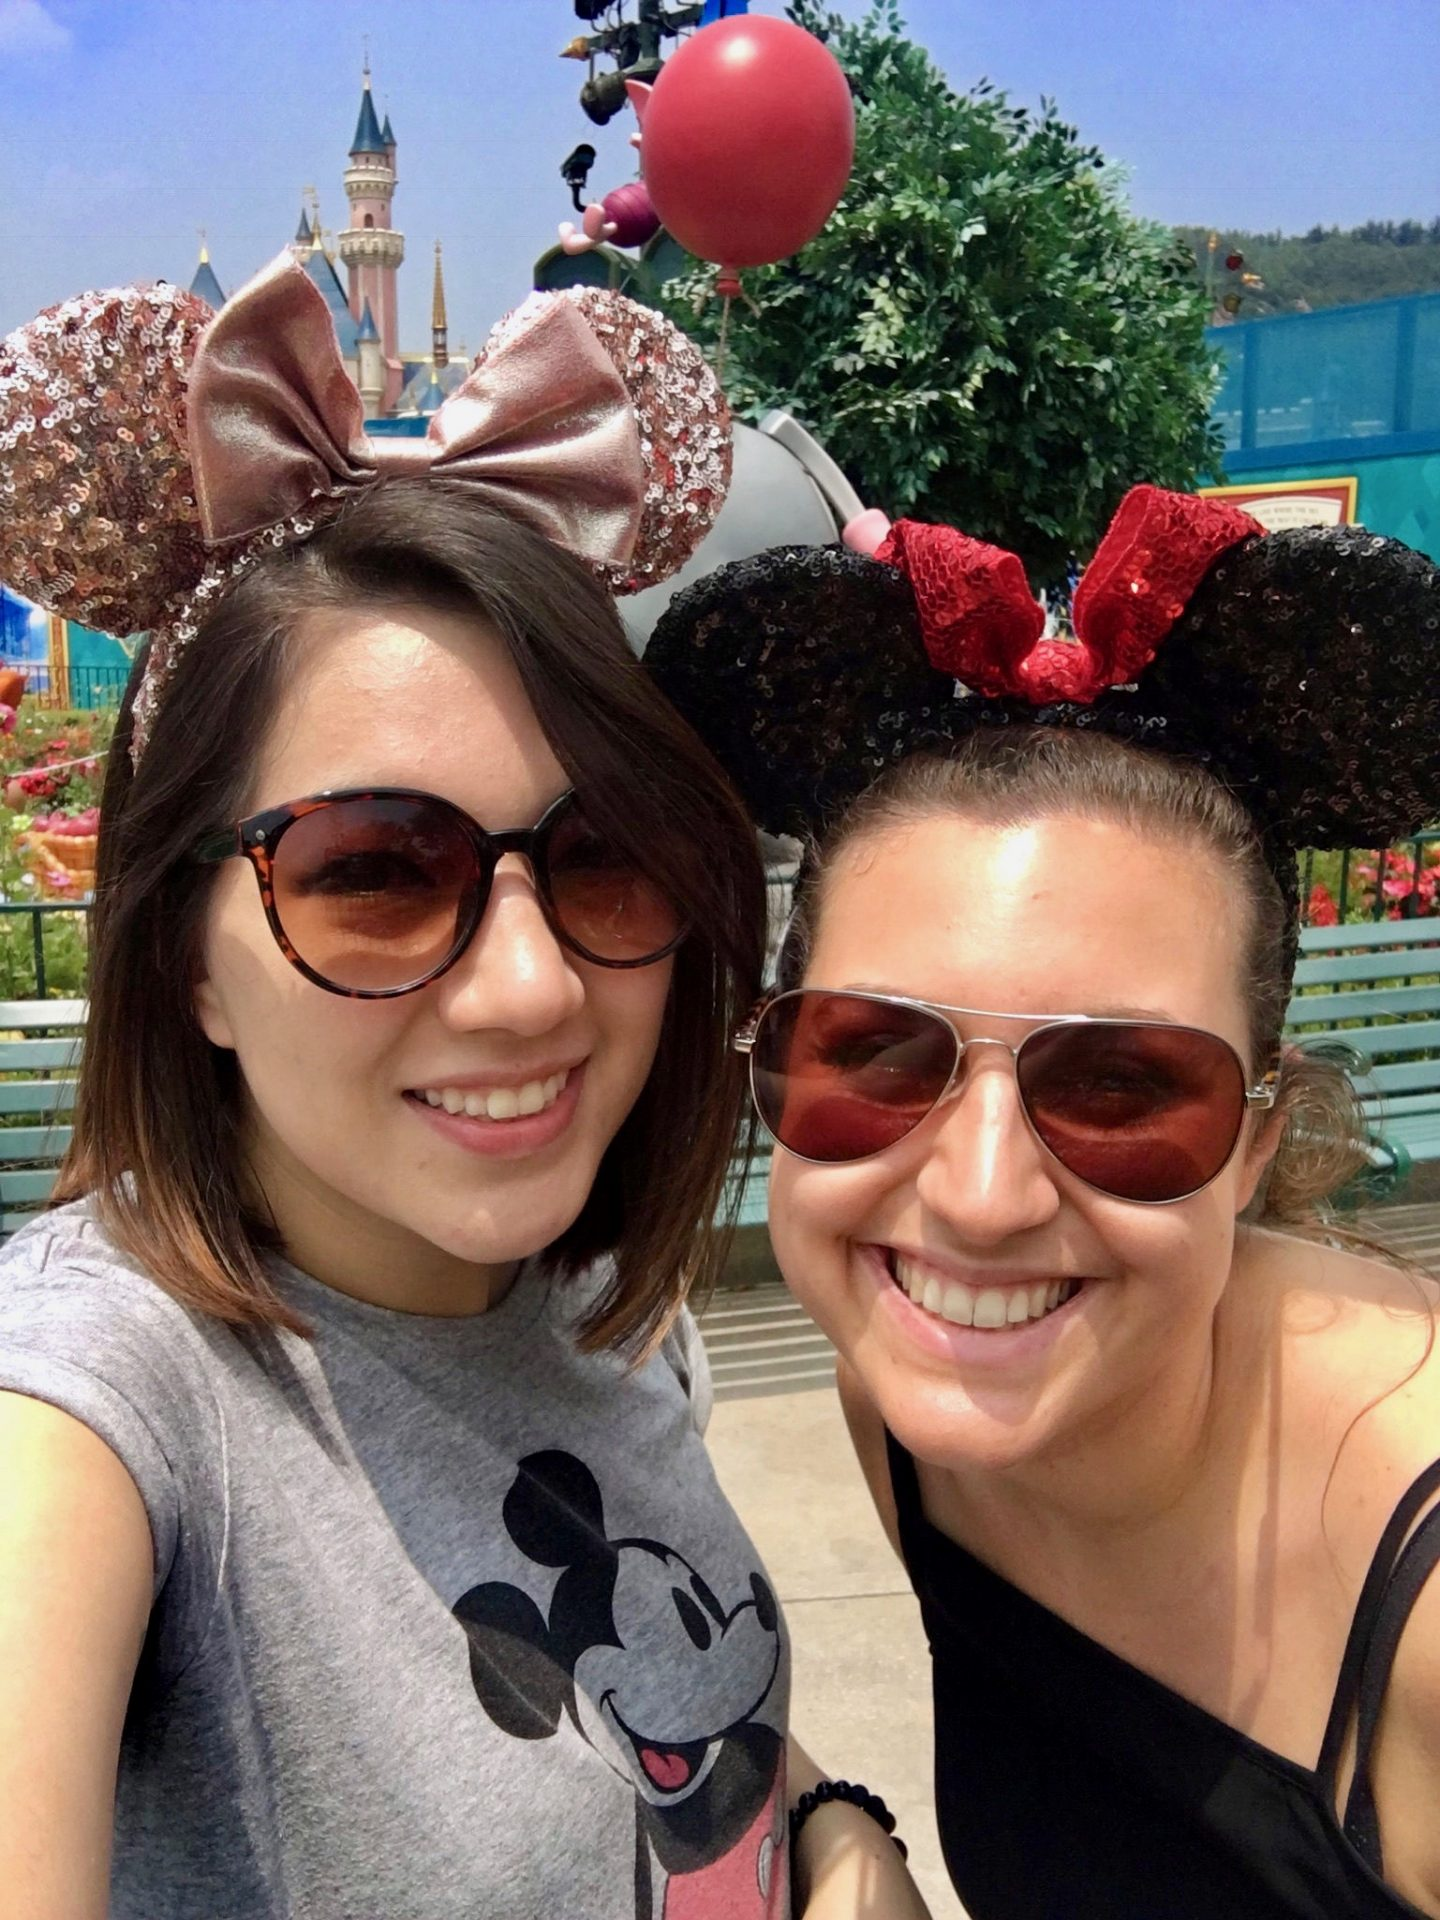 virtual travel experiences: Nell and her friend Aliss at Disney World Hong Kong, wearing mickey mouse eats and smiling at the camera